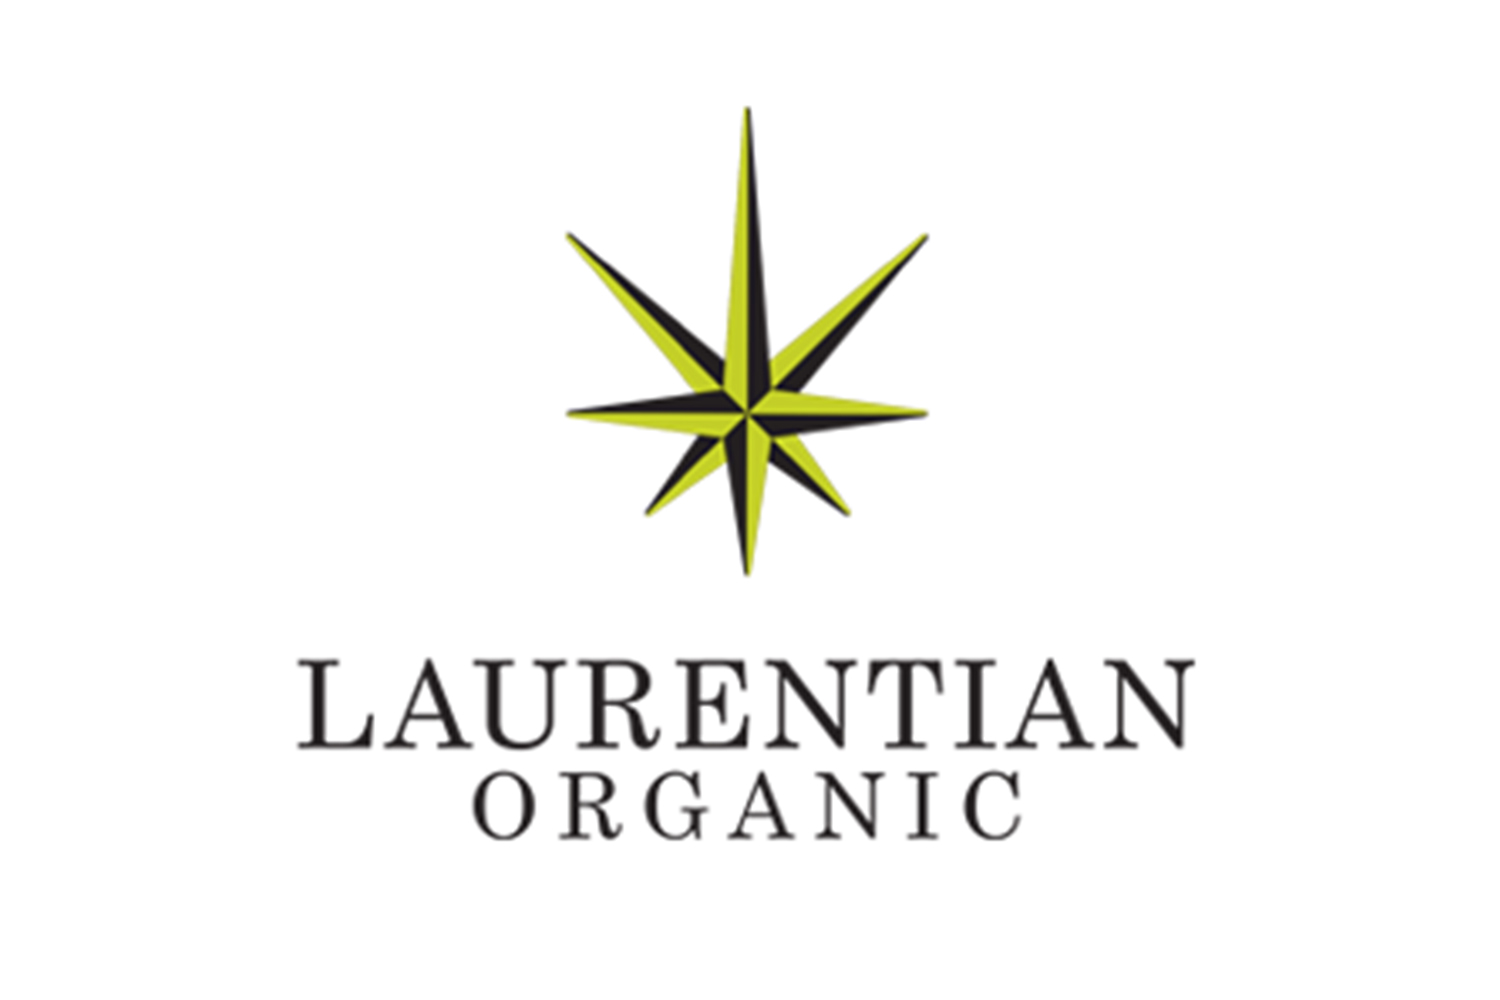 the green organic laurentian-organic